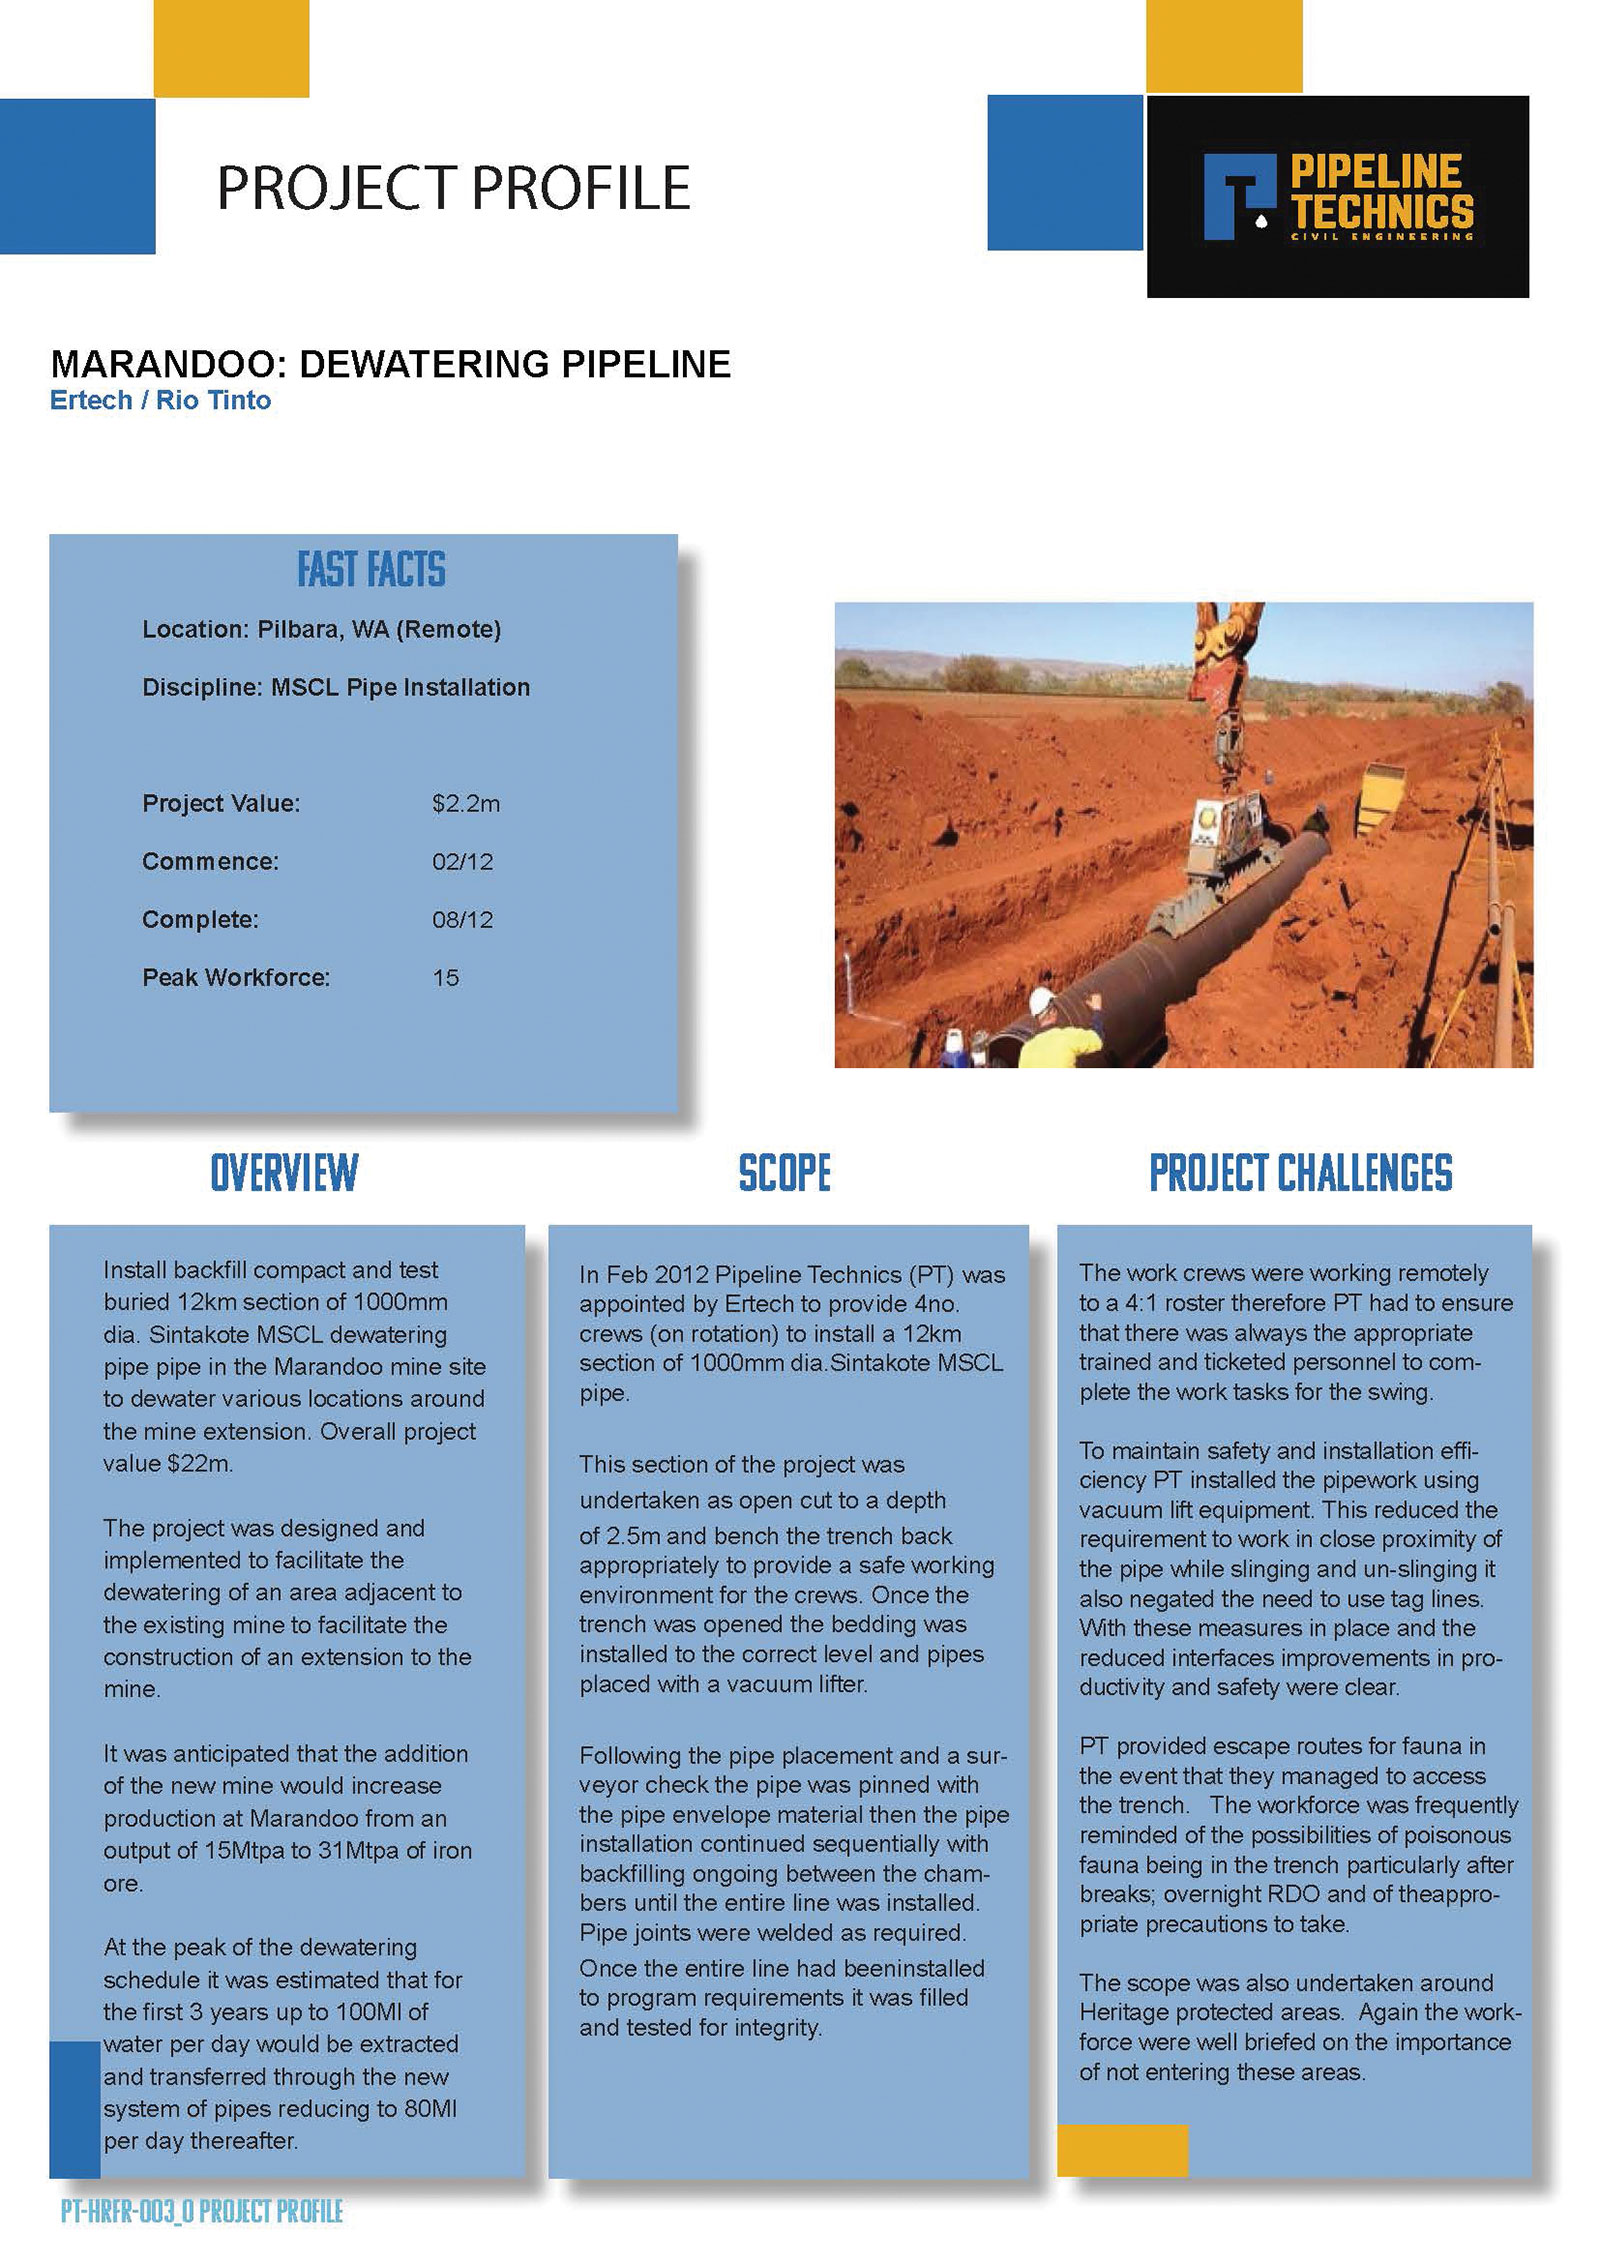 Pipeline-Technics-Project-Mullaloo